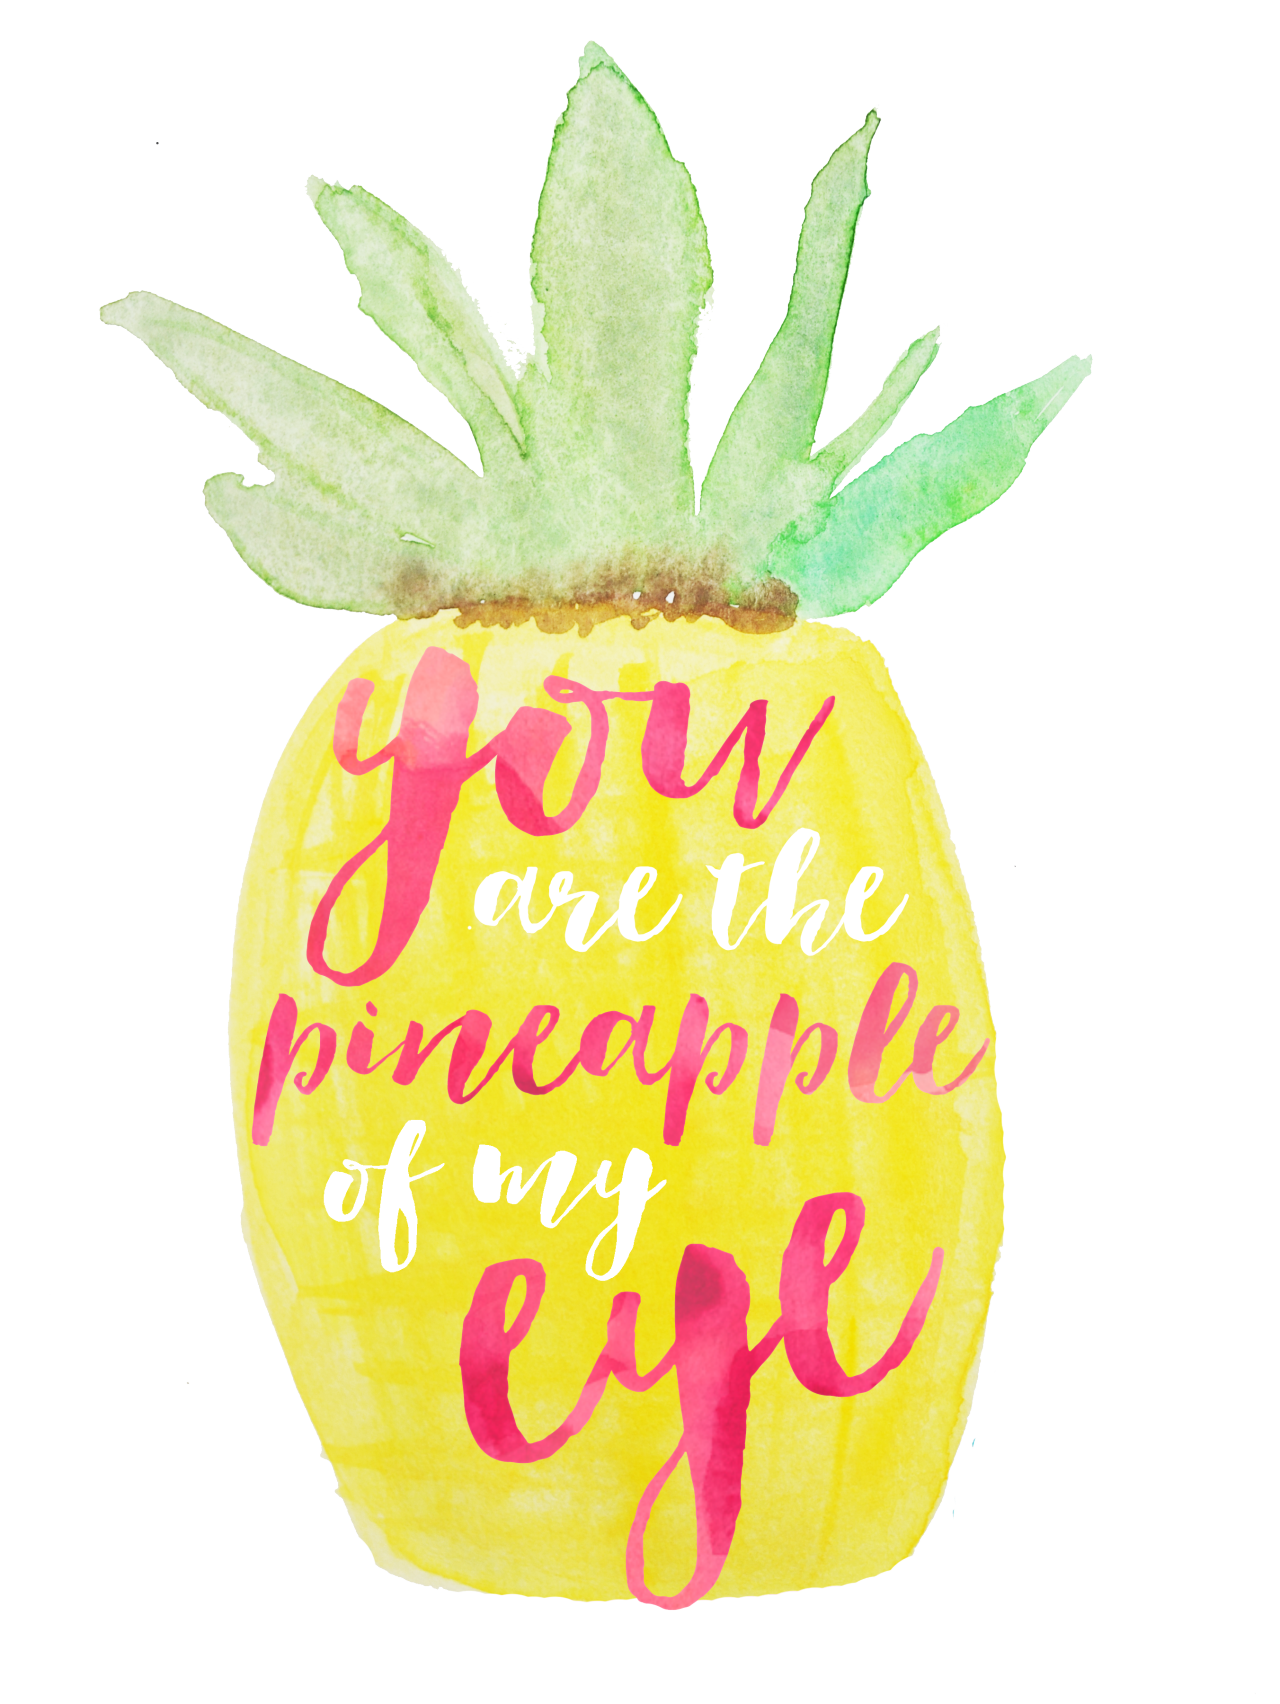 You Are The Pineapple Of My Eye Pineapple Quotes Cute Quotes Pineapple